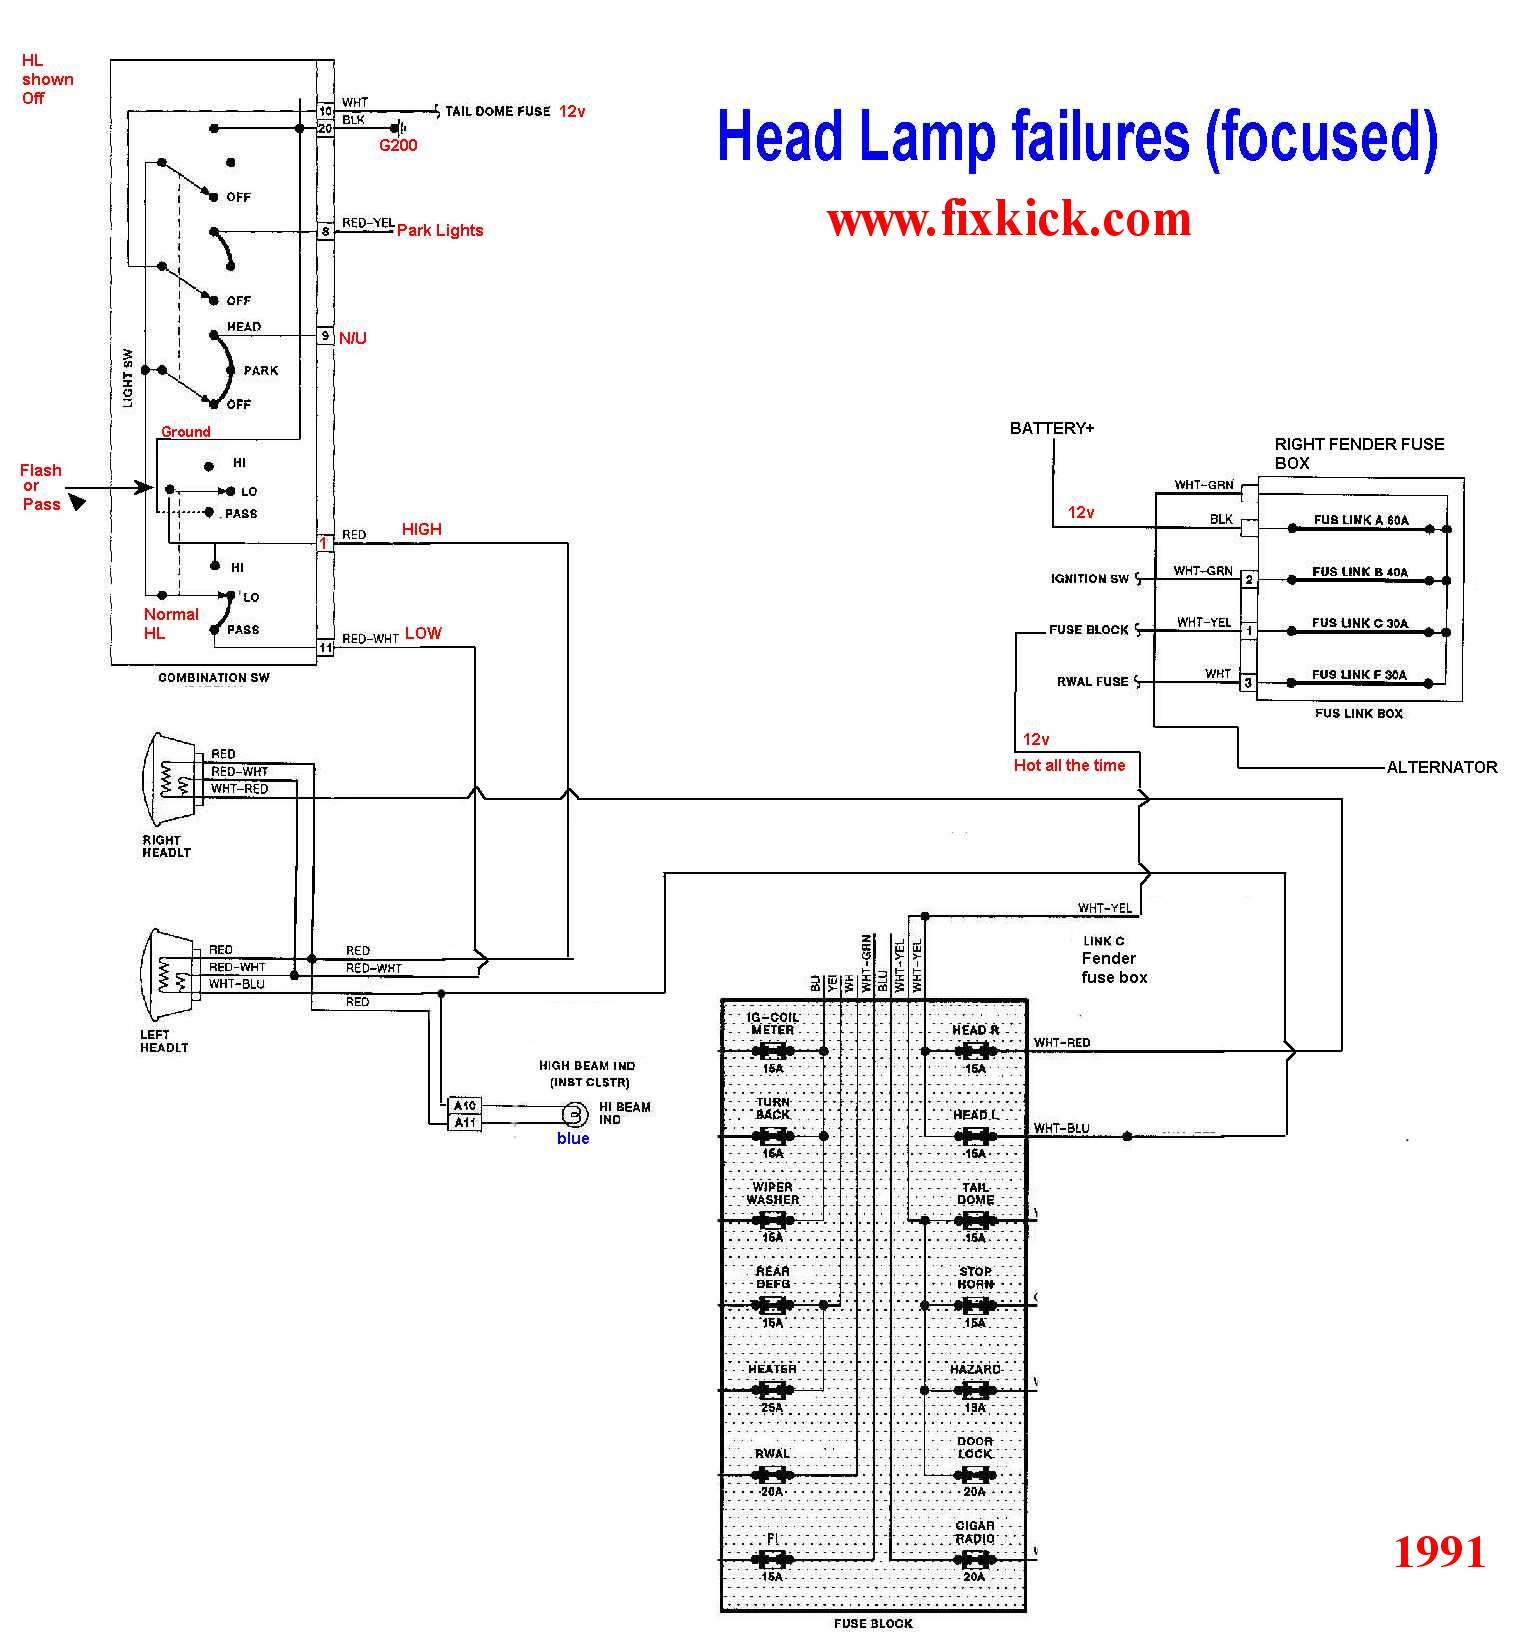 HL1A 1998 tracker wiring diagram 1998 wiring diagrams instruction tracker wiring diagram at edmiracle.co